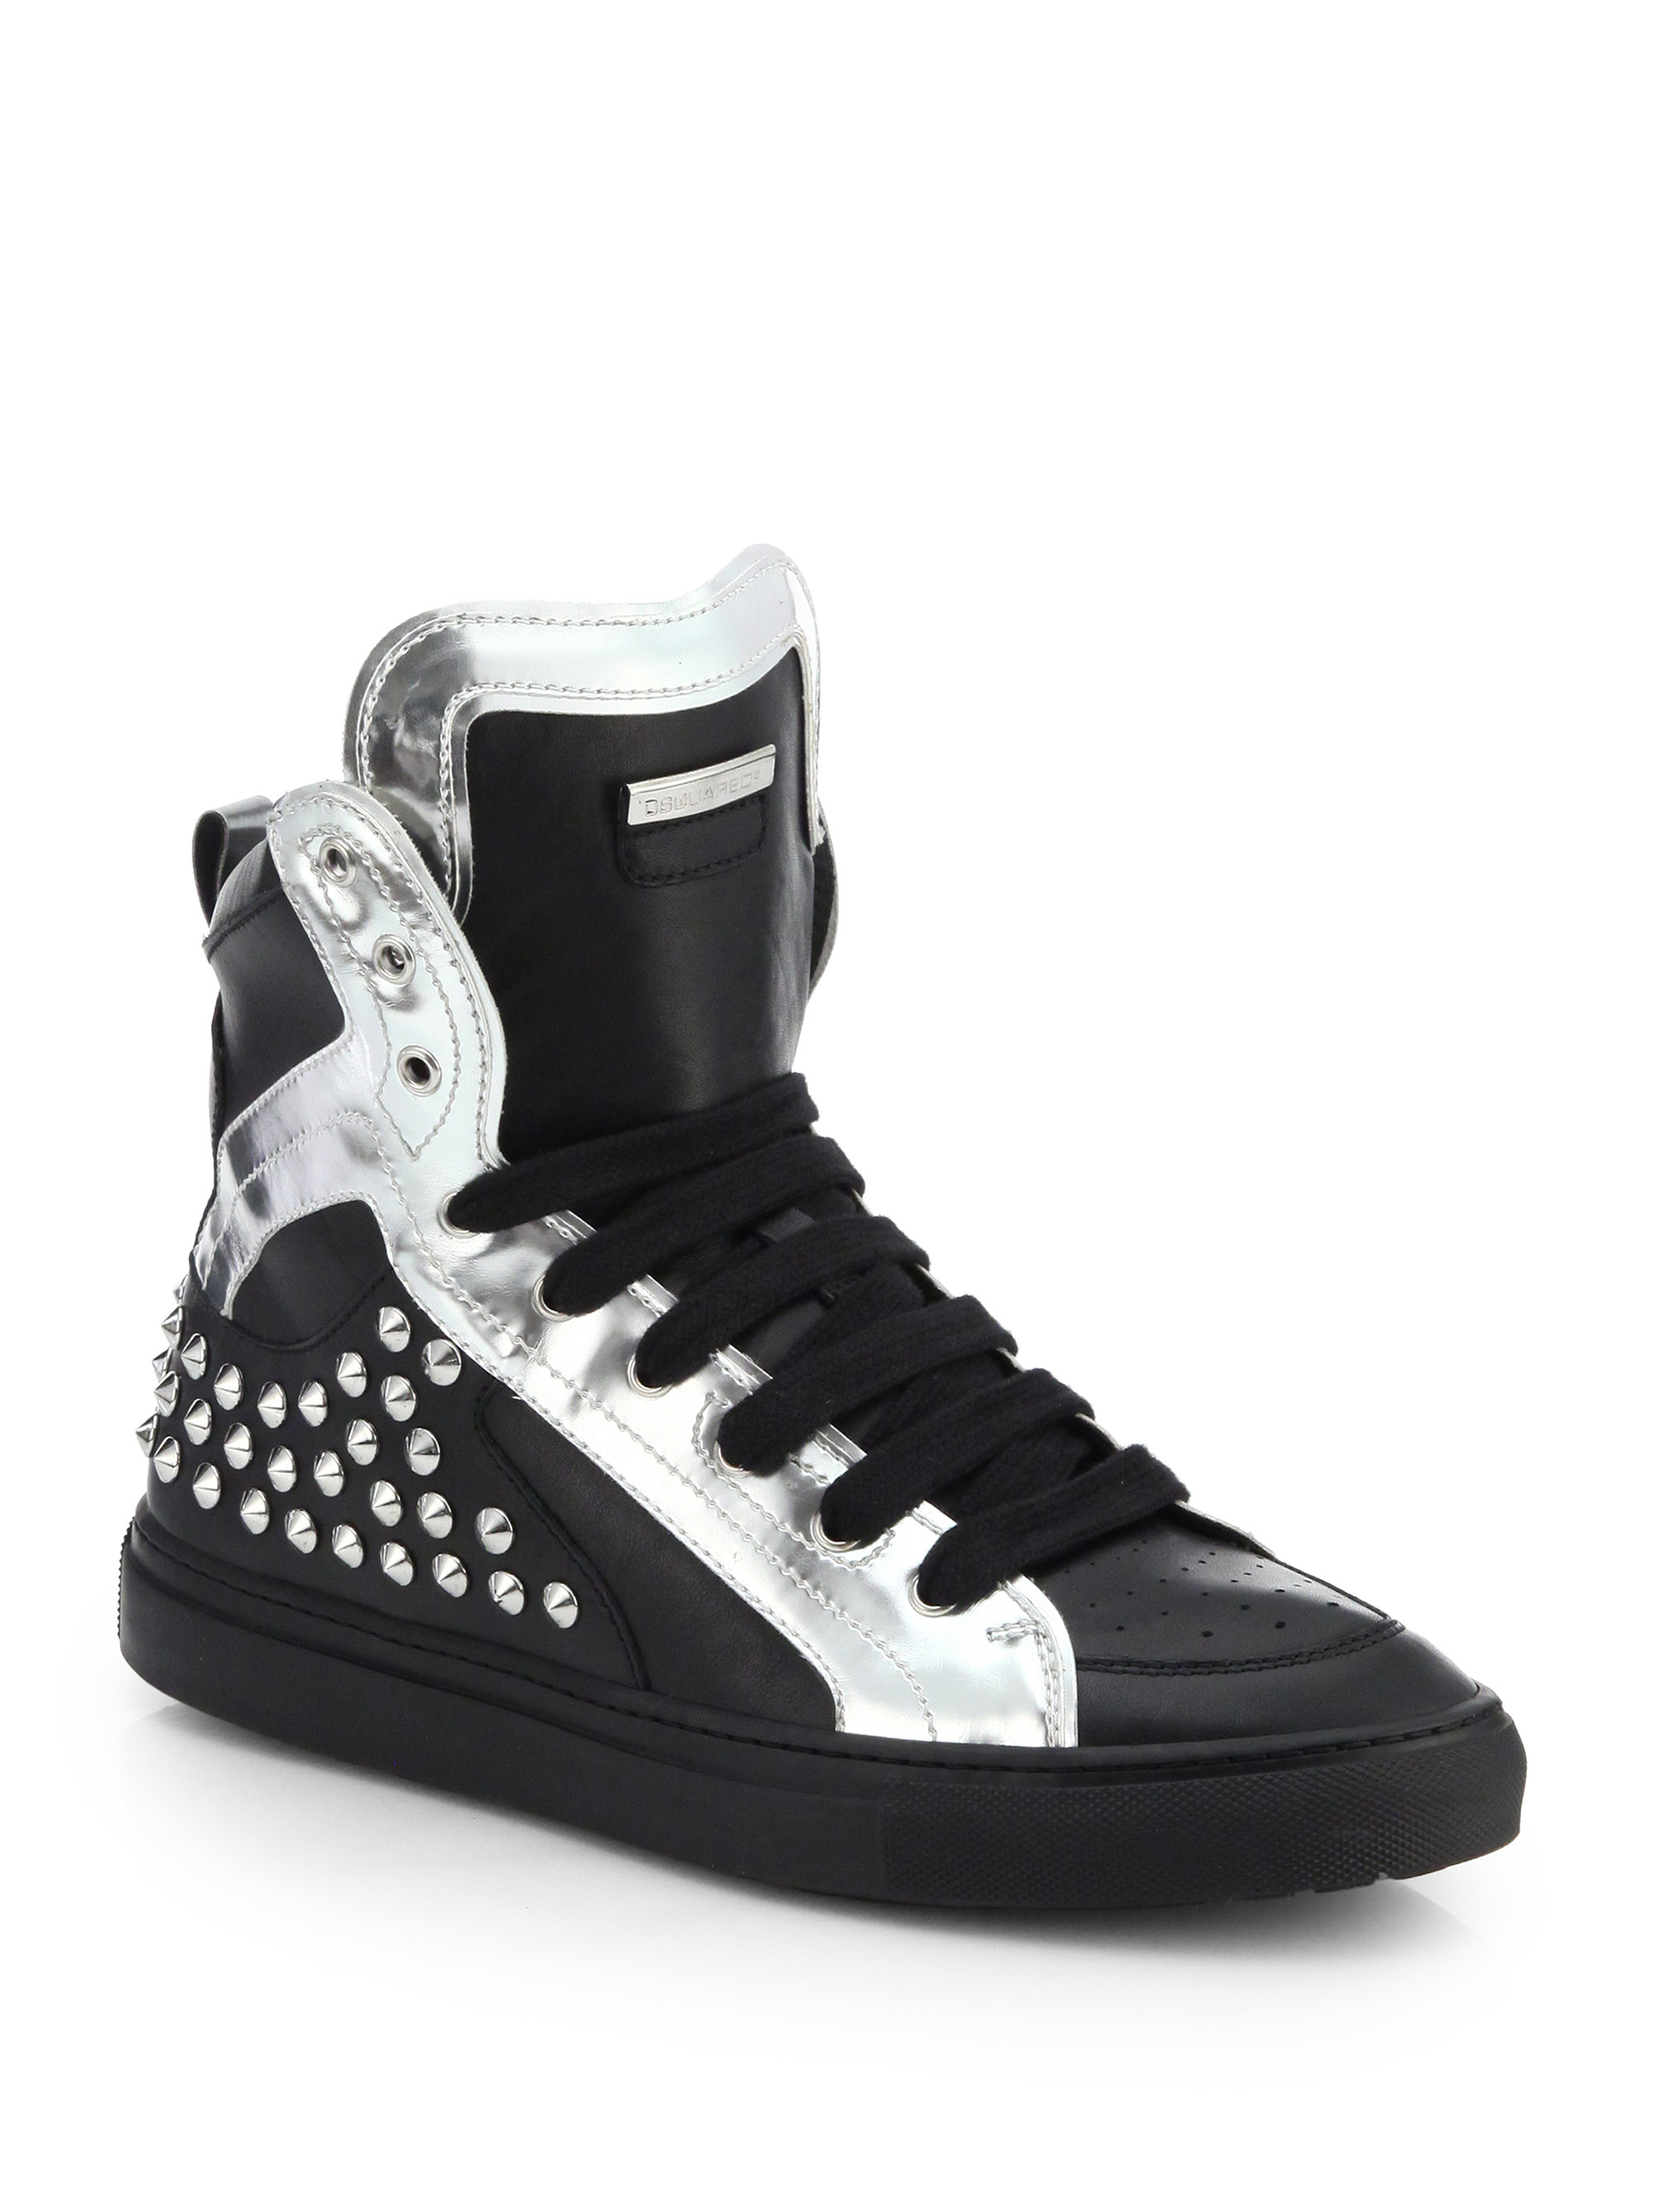 Dsquared² Leather High-Top Sneakers sale for nice 7SAHxm1